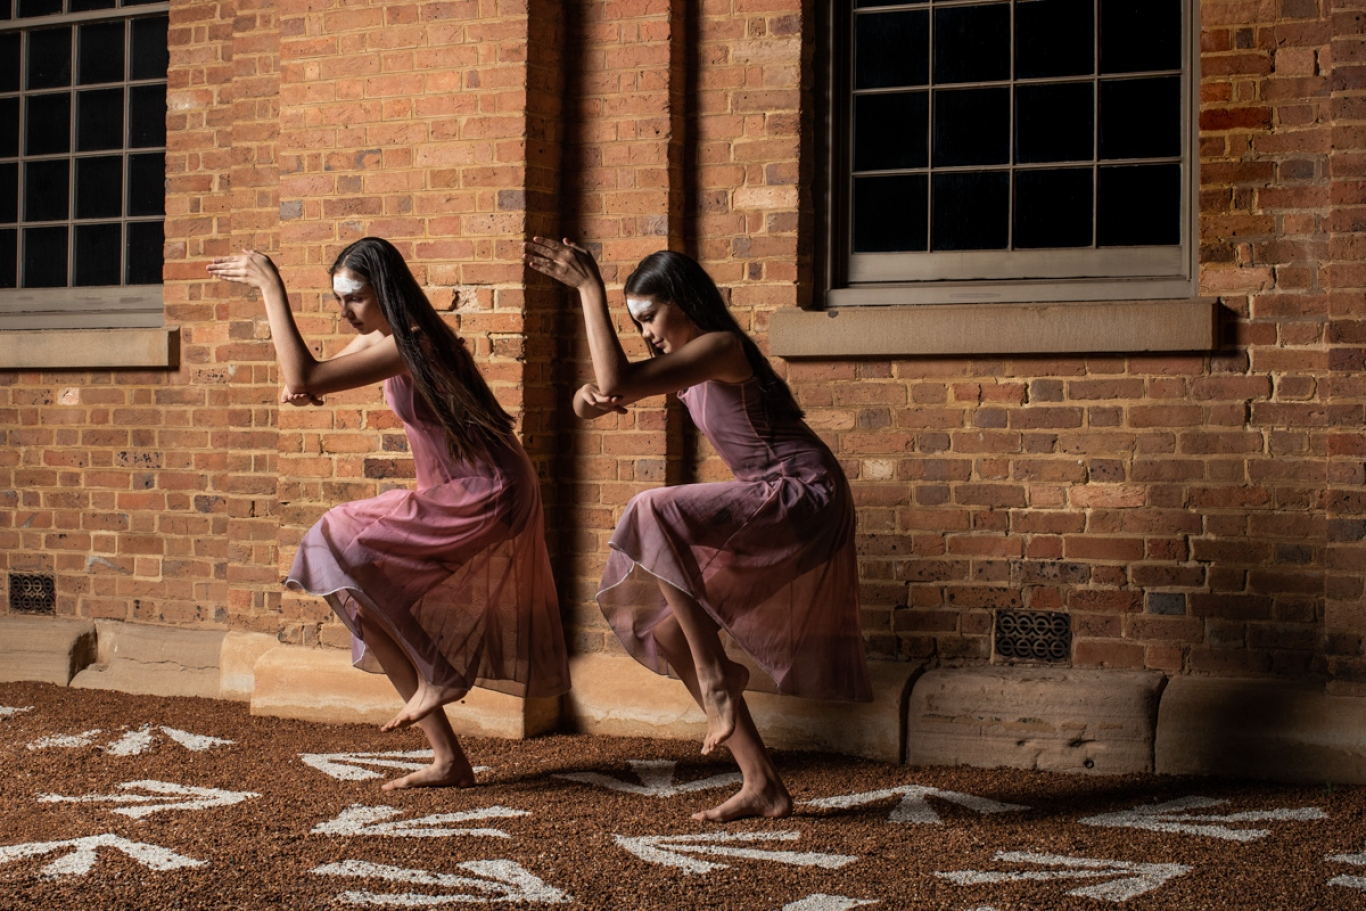 Wiradjuri dancers Lowanna and Lucy Murray perform on untitled (maraong manaóuwi) 2019, Hyde Park Barracks